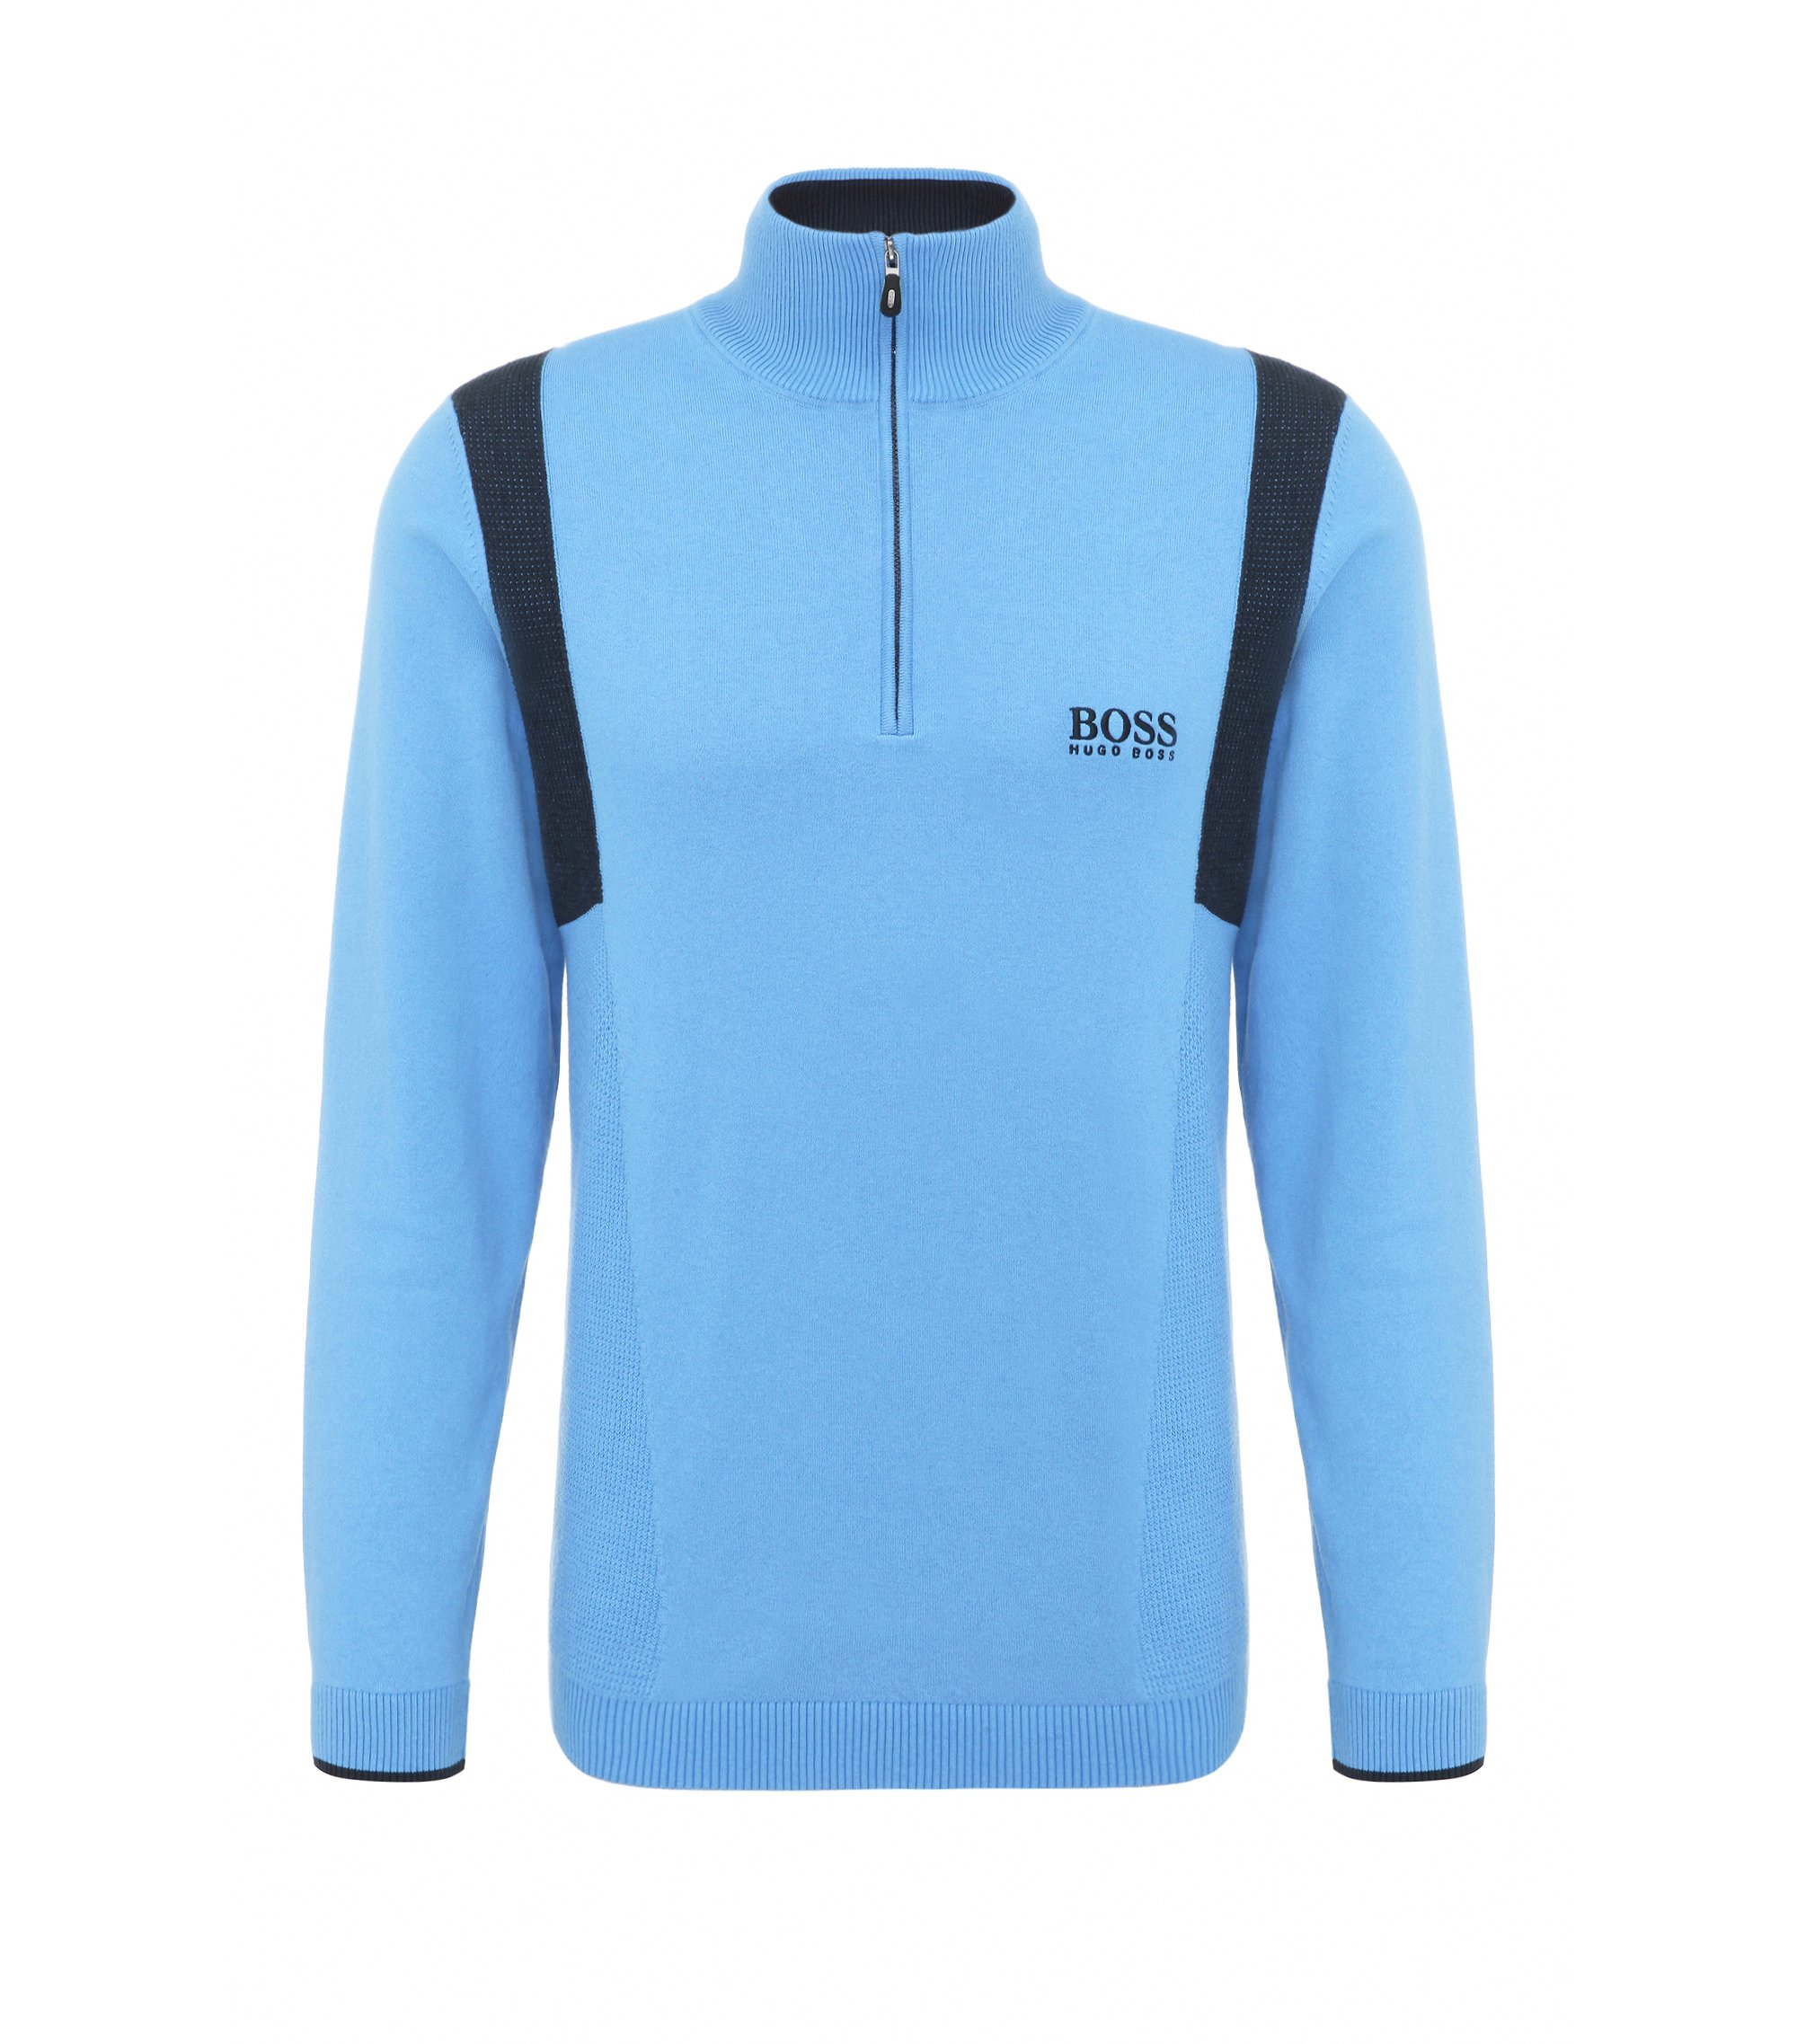 Water-Repellent Stretch Cotton Sweater | Zelichior Pro S17, Blue